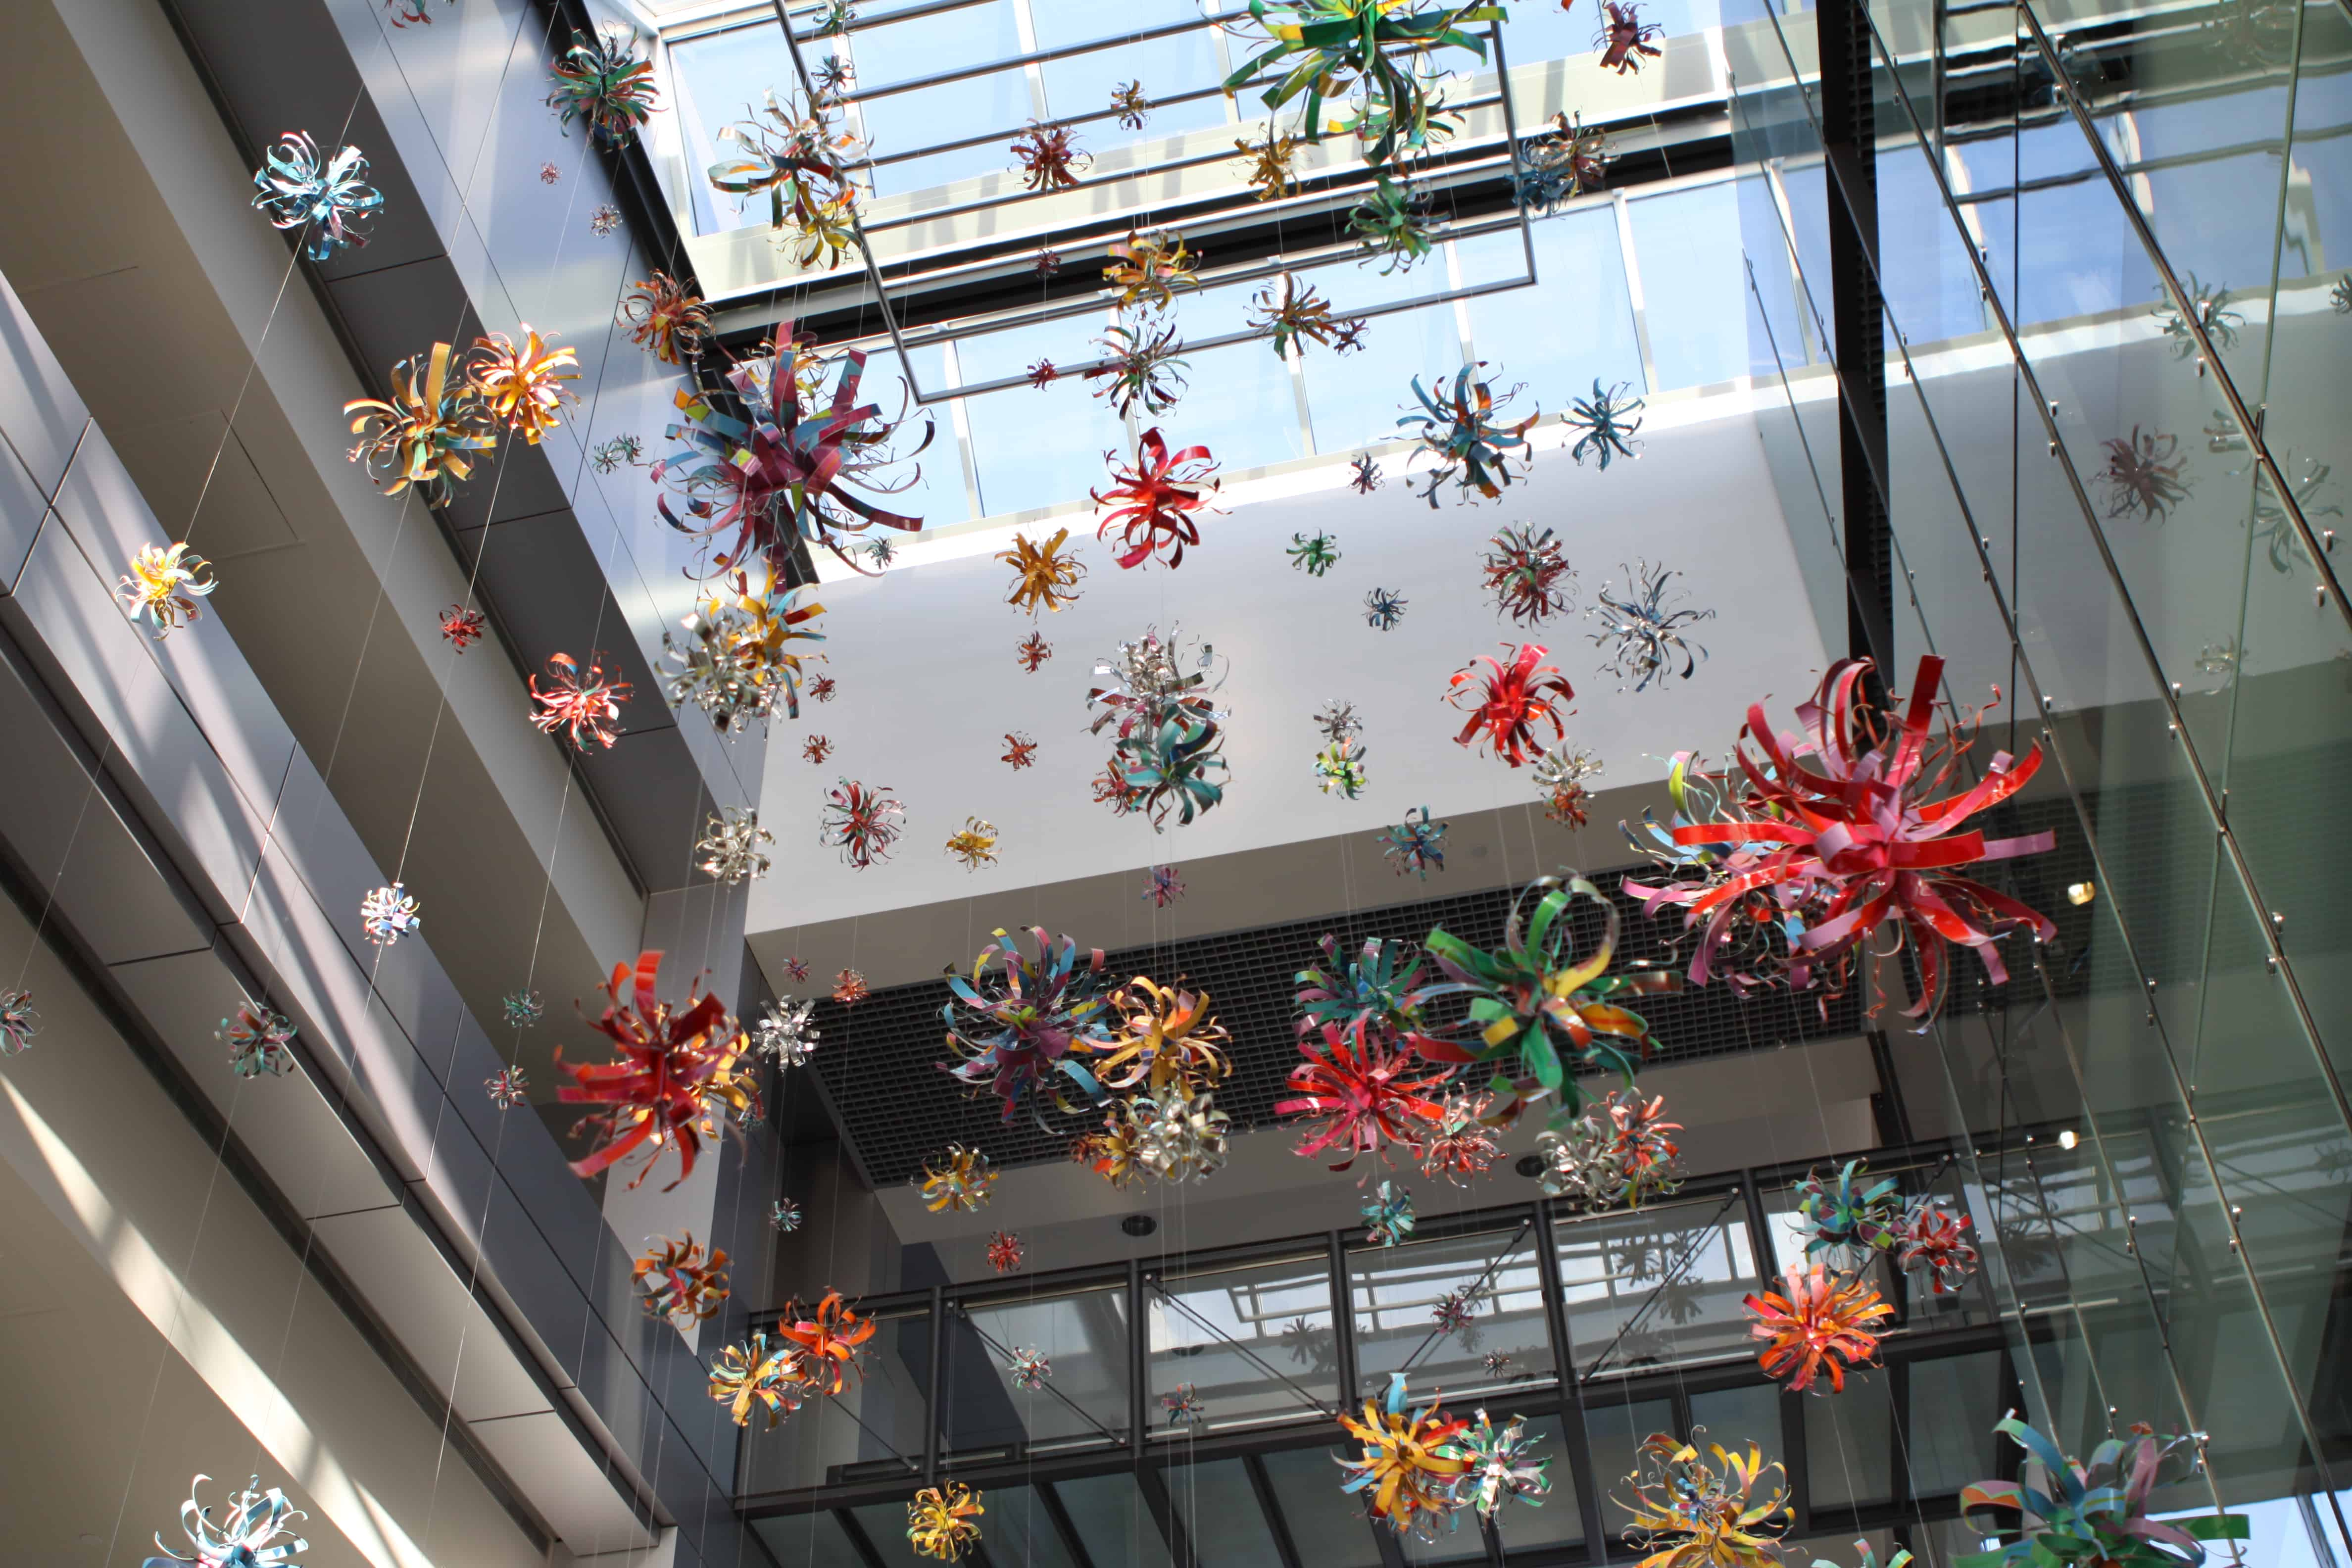 Colorful Hanging Decorations on the First Floor of the BHG Building